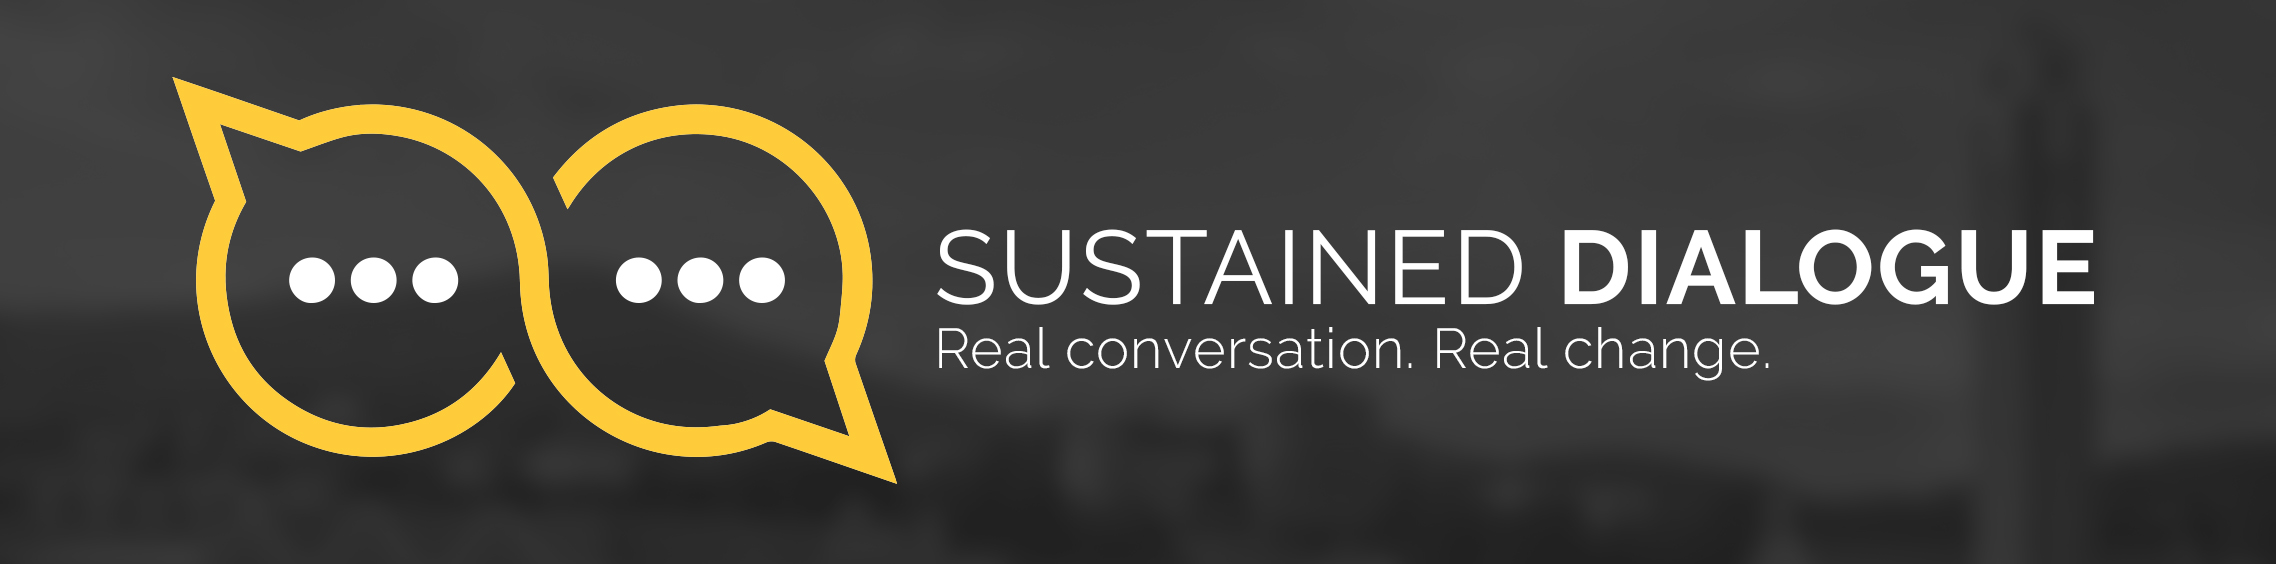 Sustained Dialogue Website Banner 1